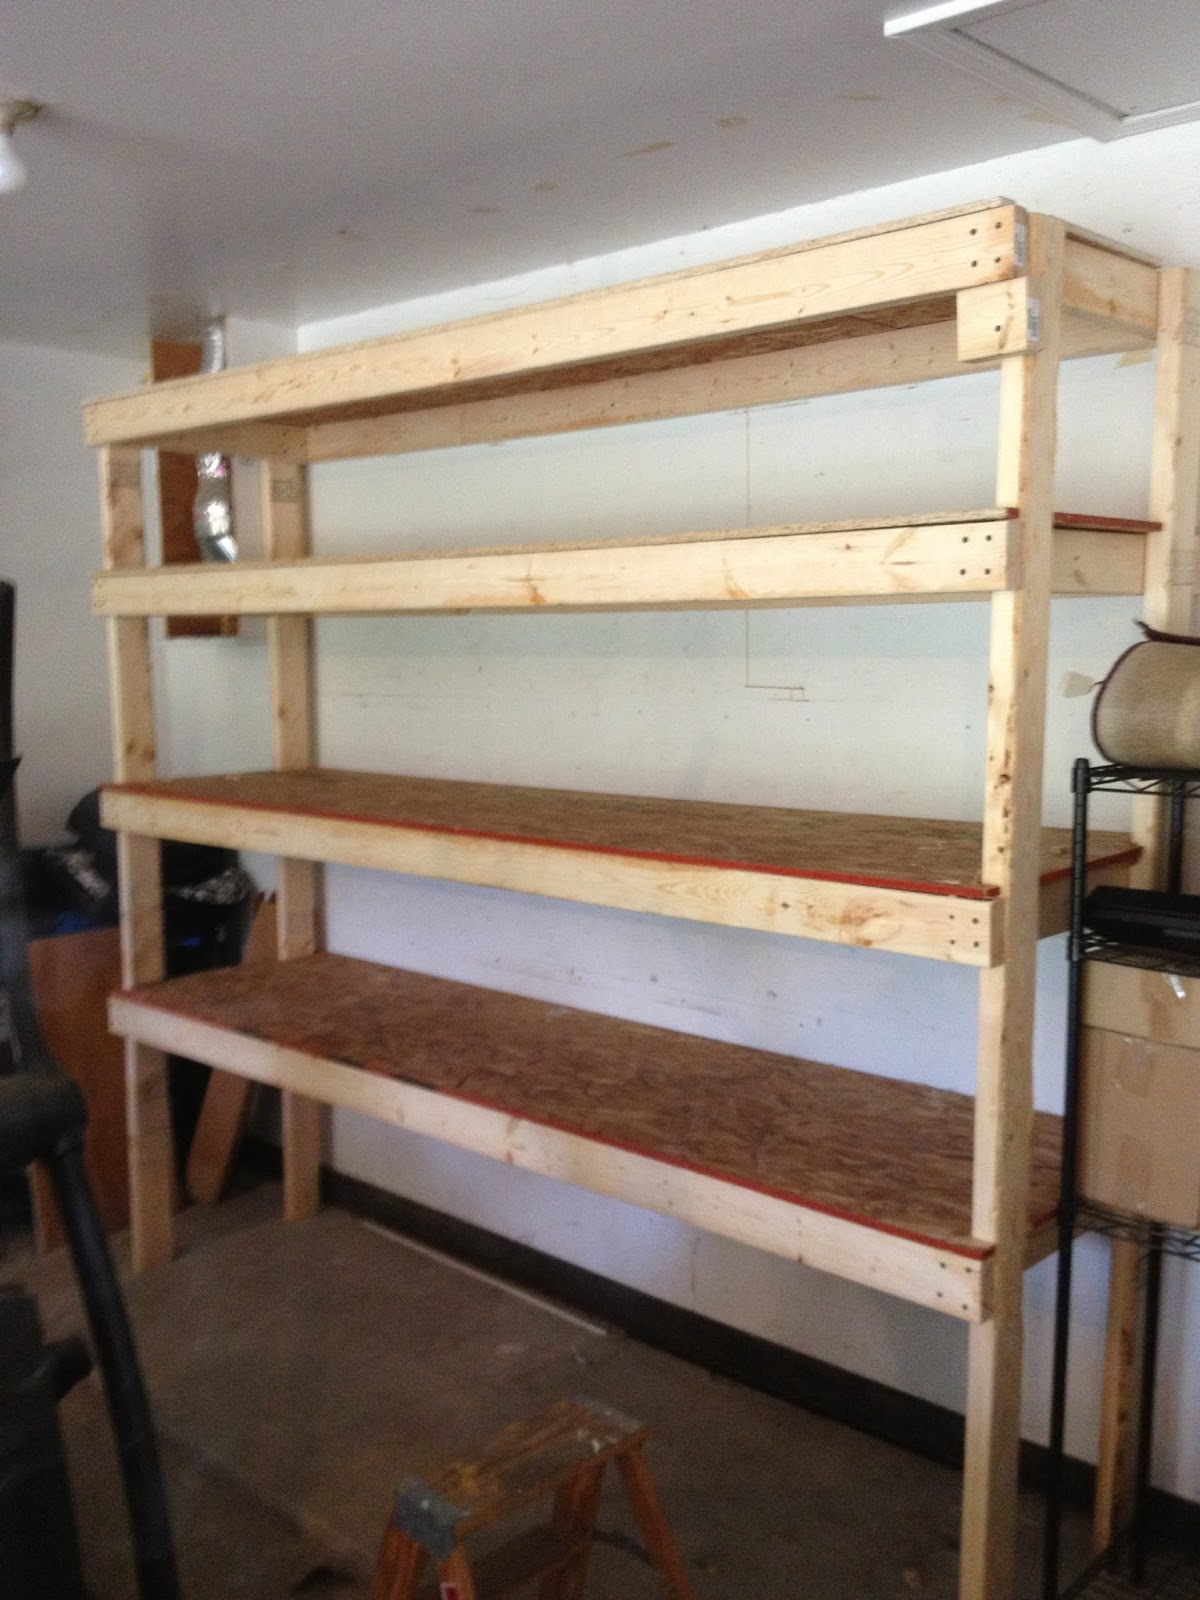 diy-garage-shelves-5